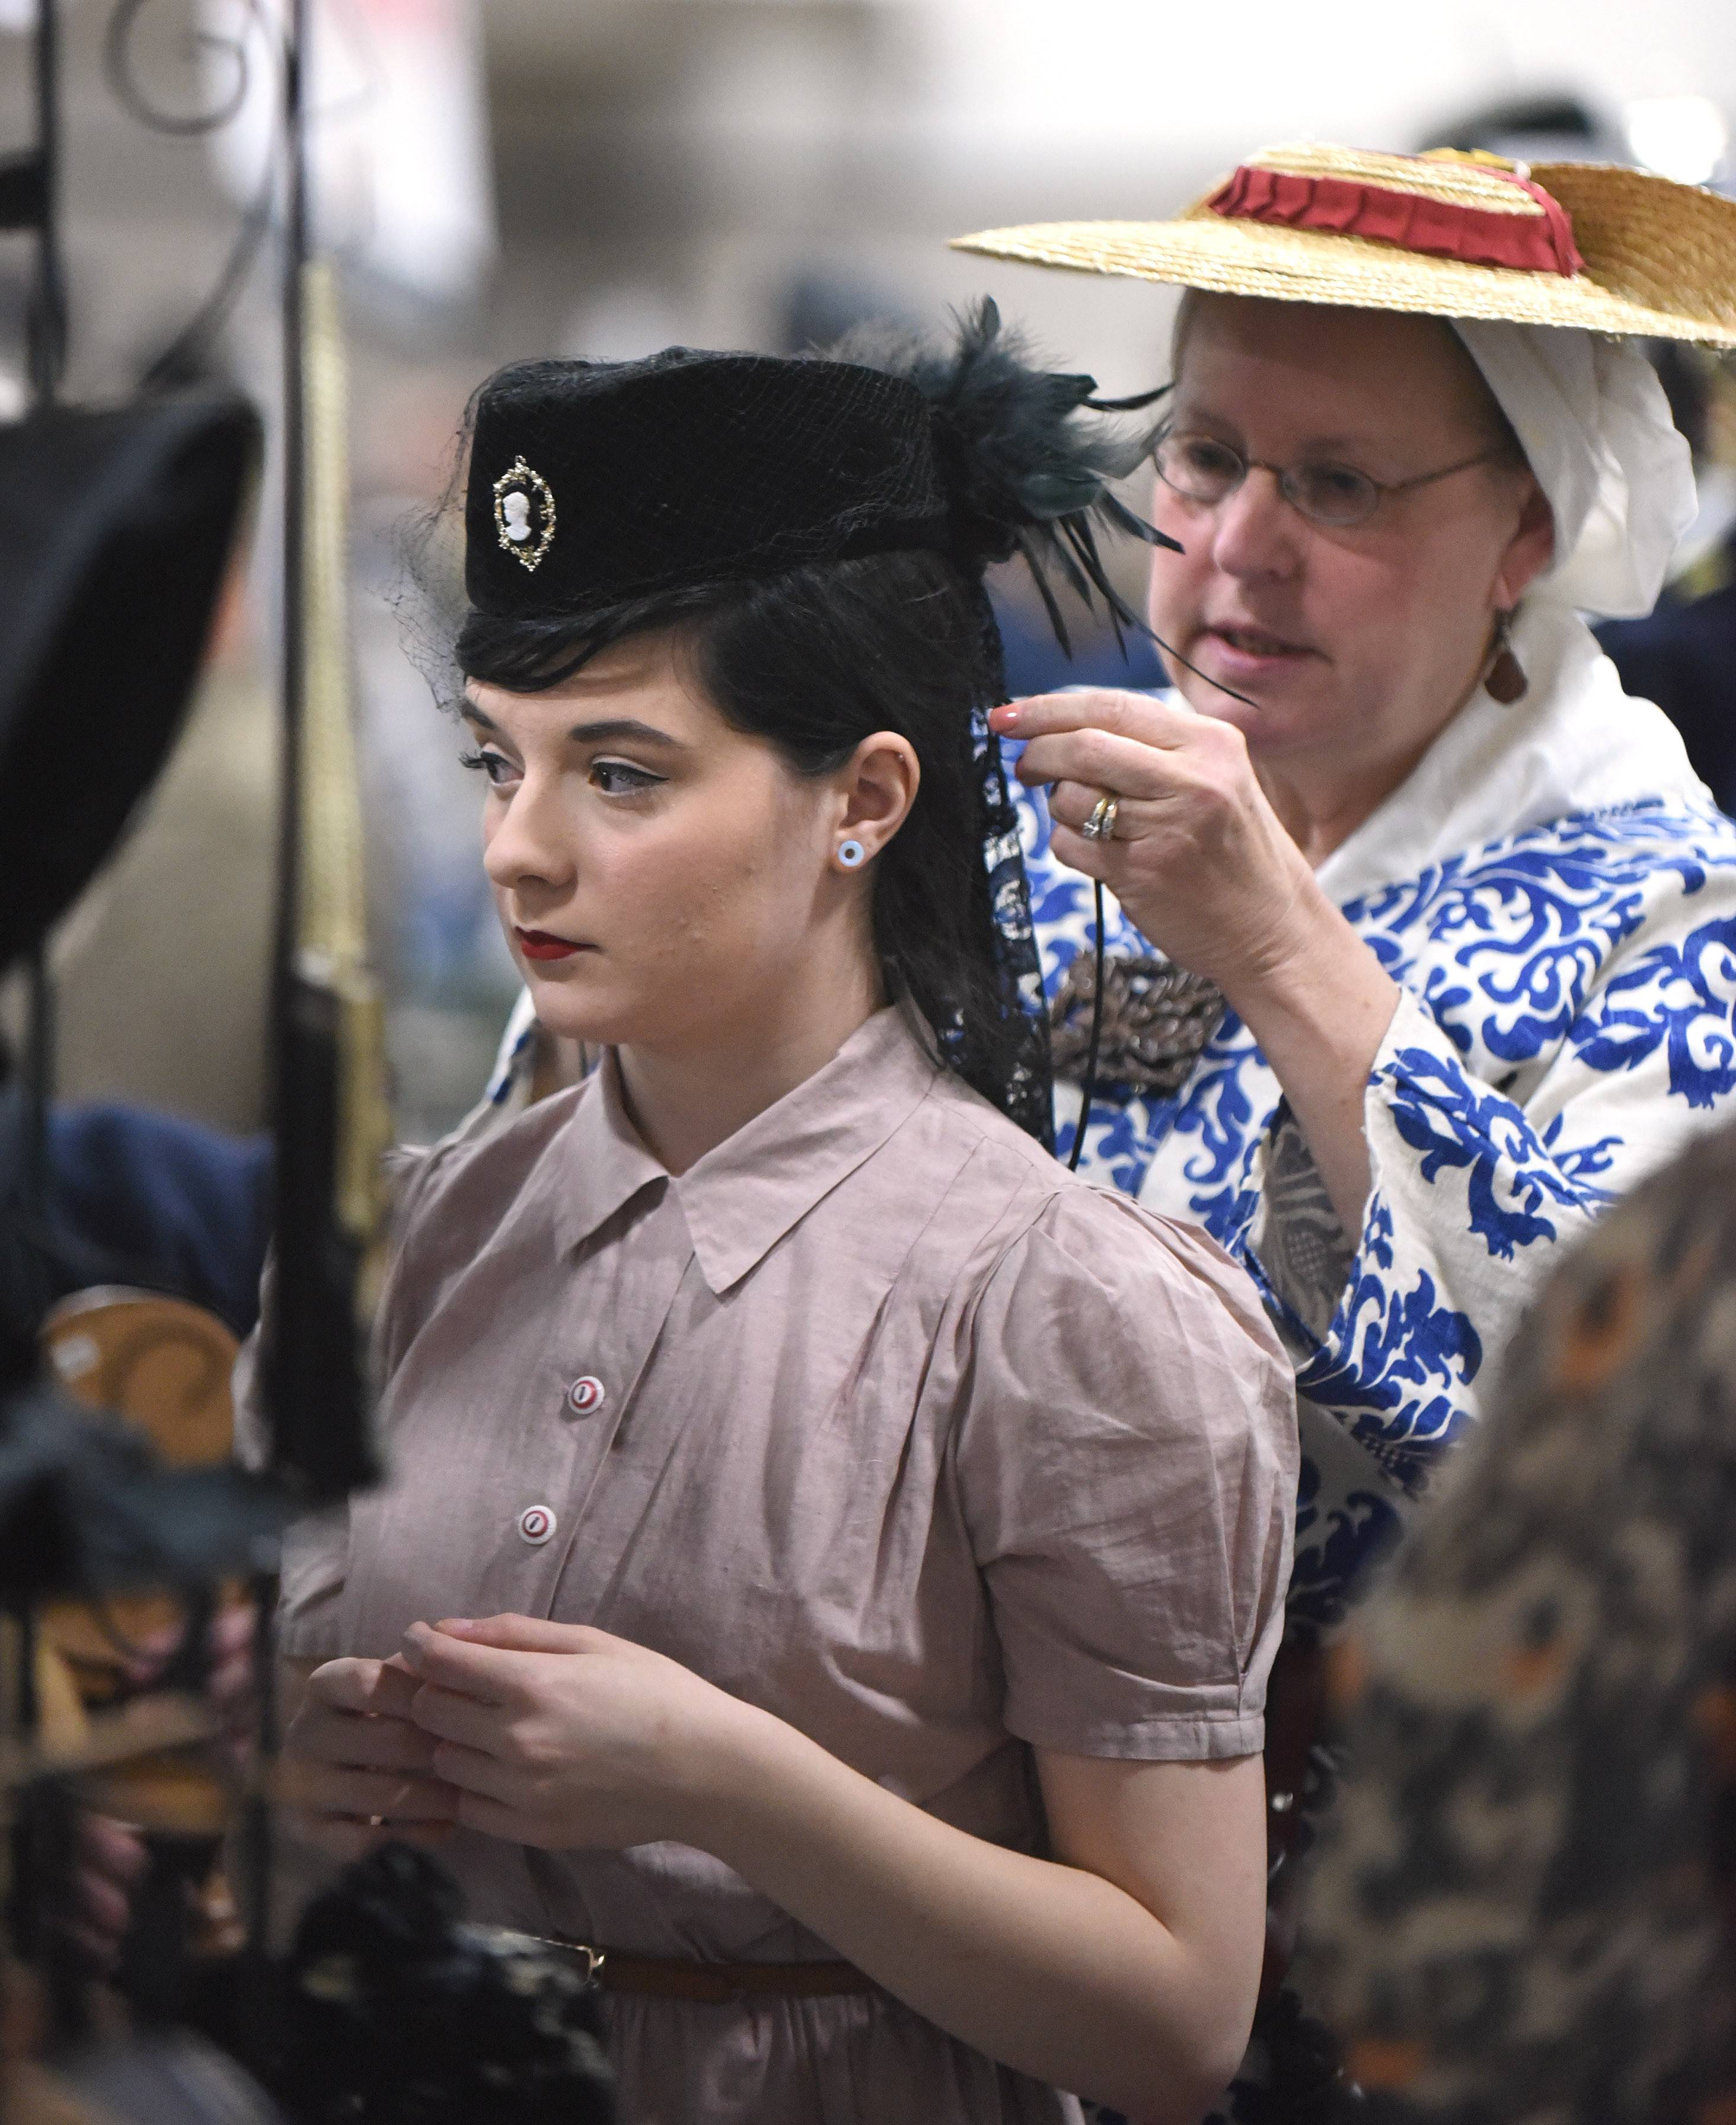 Sam Bellassai, 17, of Frankfort is fitted with a hat for her 1940s era costume by Deborah Kelly of Danville in the Ladies & Gentlemens Emporium vendor booth (out of Oakwood) during Military History Fest at the Pheasant Run Mega Center Saturday. Bellassai has been a re-enactor for three years; Kelly (dressed in a Revolutionary War era costume) 35 years.